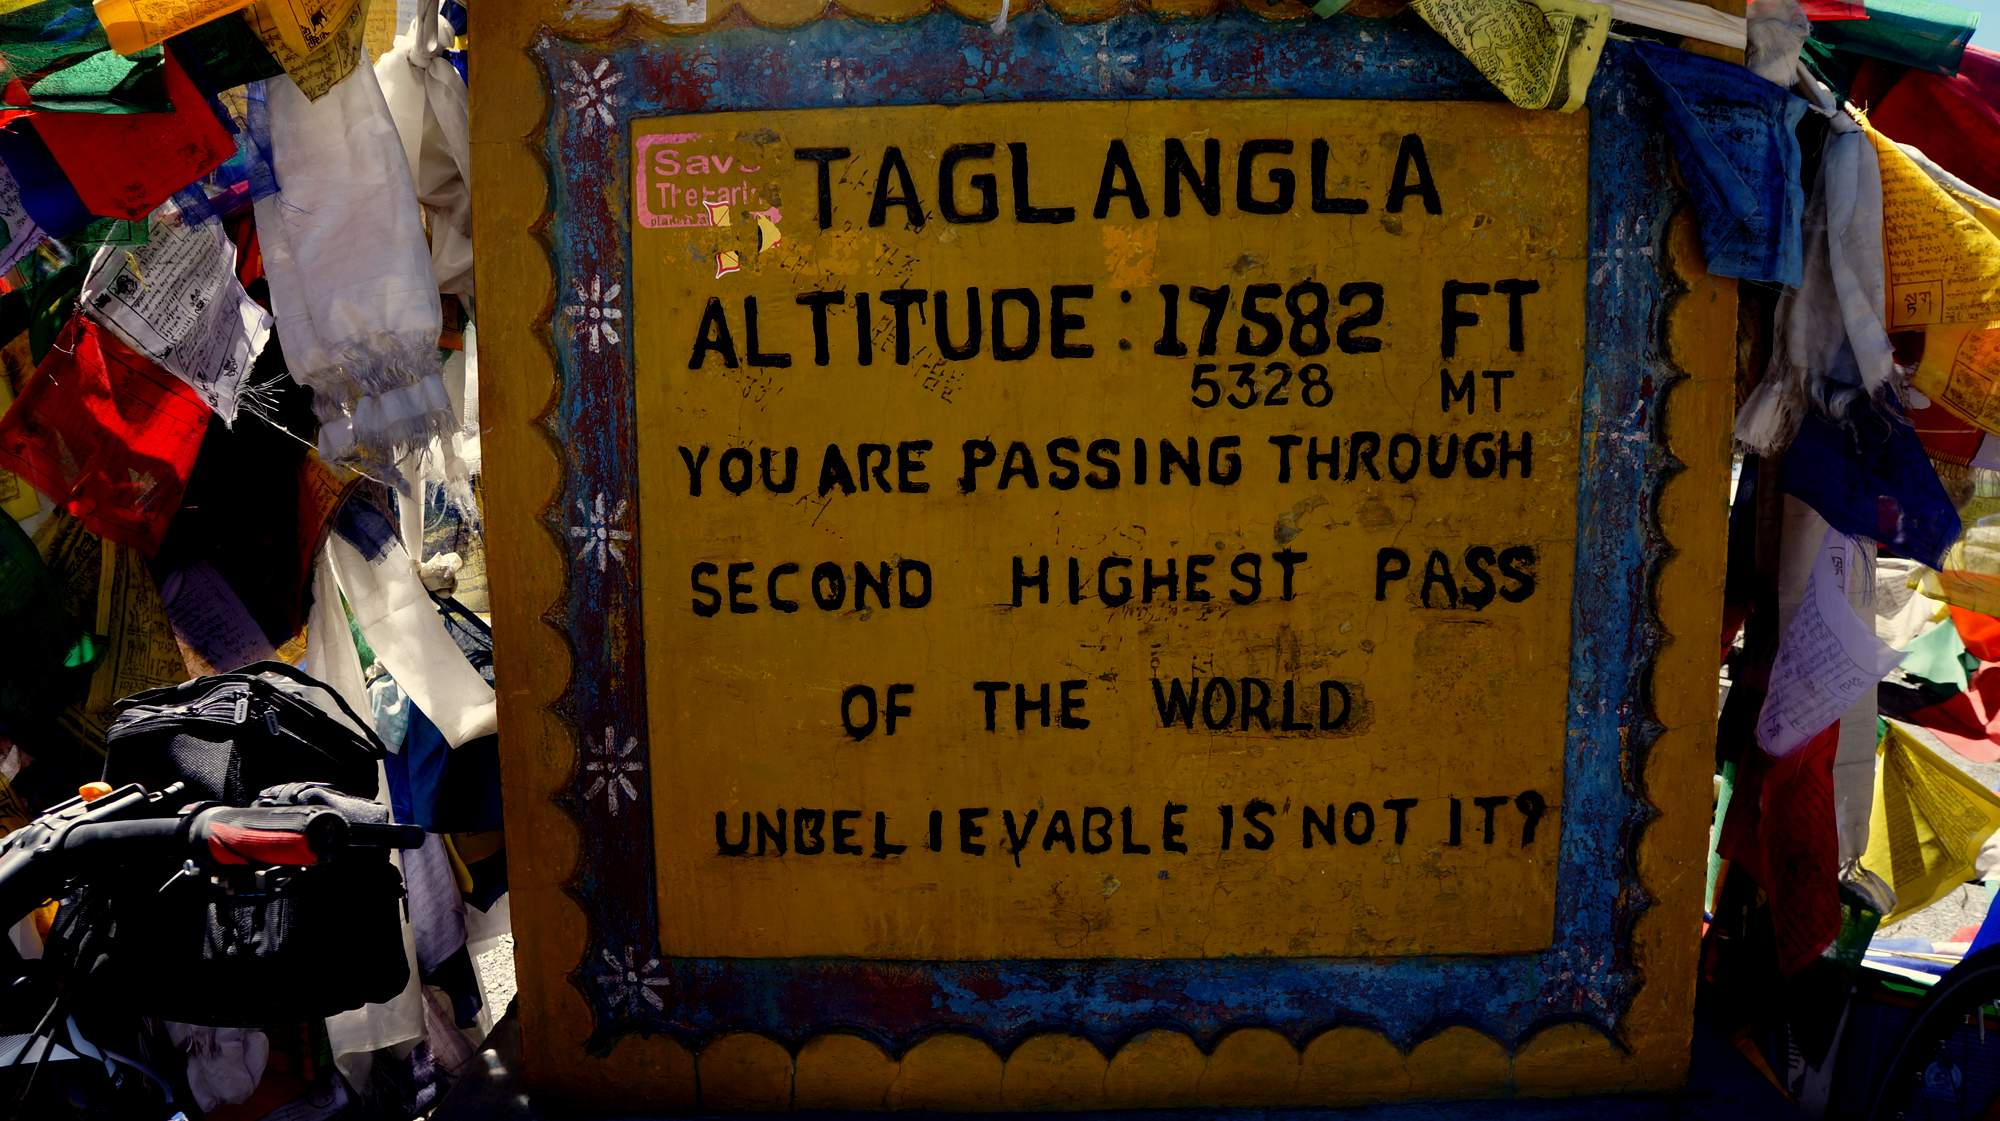 Cycling Taglang La Pass 5,328m